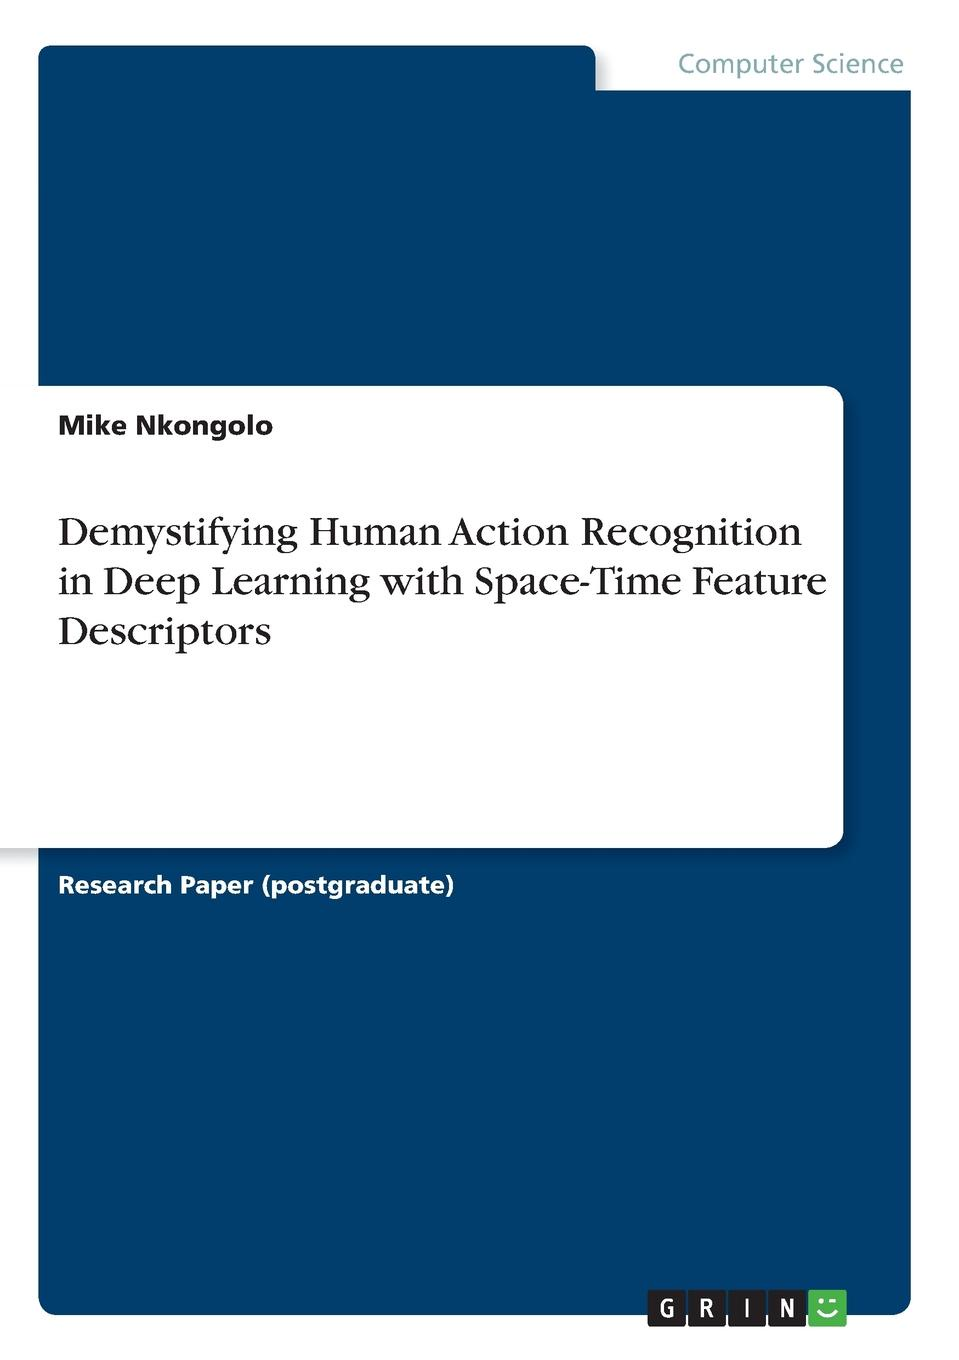 Mike Nkongolo Demystifying Human Action Recognition in Deep Learning with Space-Time Feature Descriptors